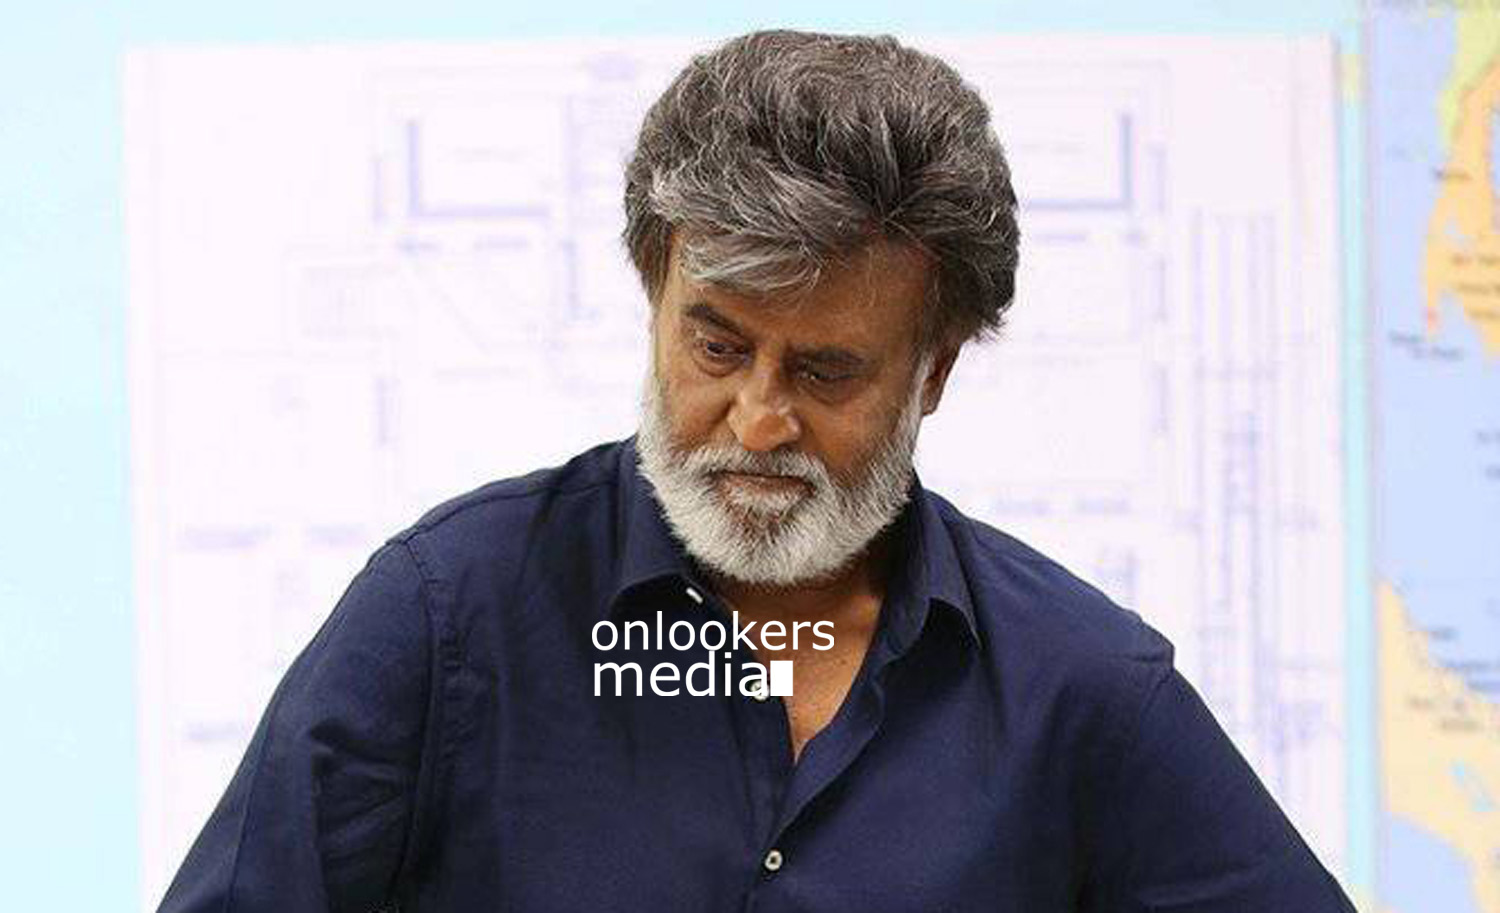 http://onlookersmedia.in/wp-content/uploads/2016/07/Rajinikanth-Kabali-stills-photos-images-pics-22.jpg